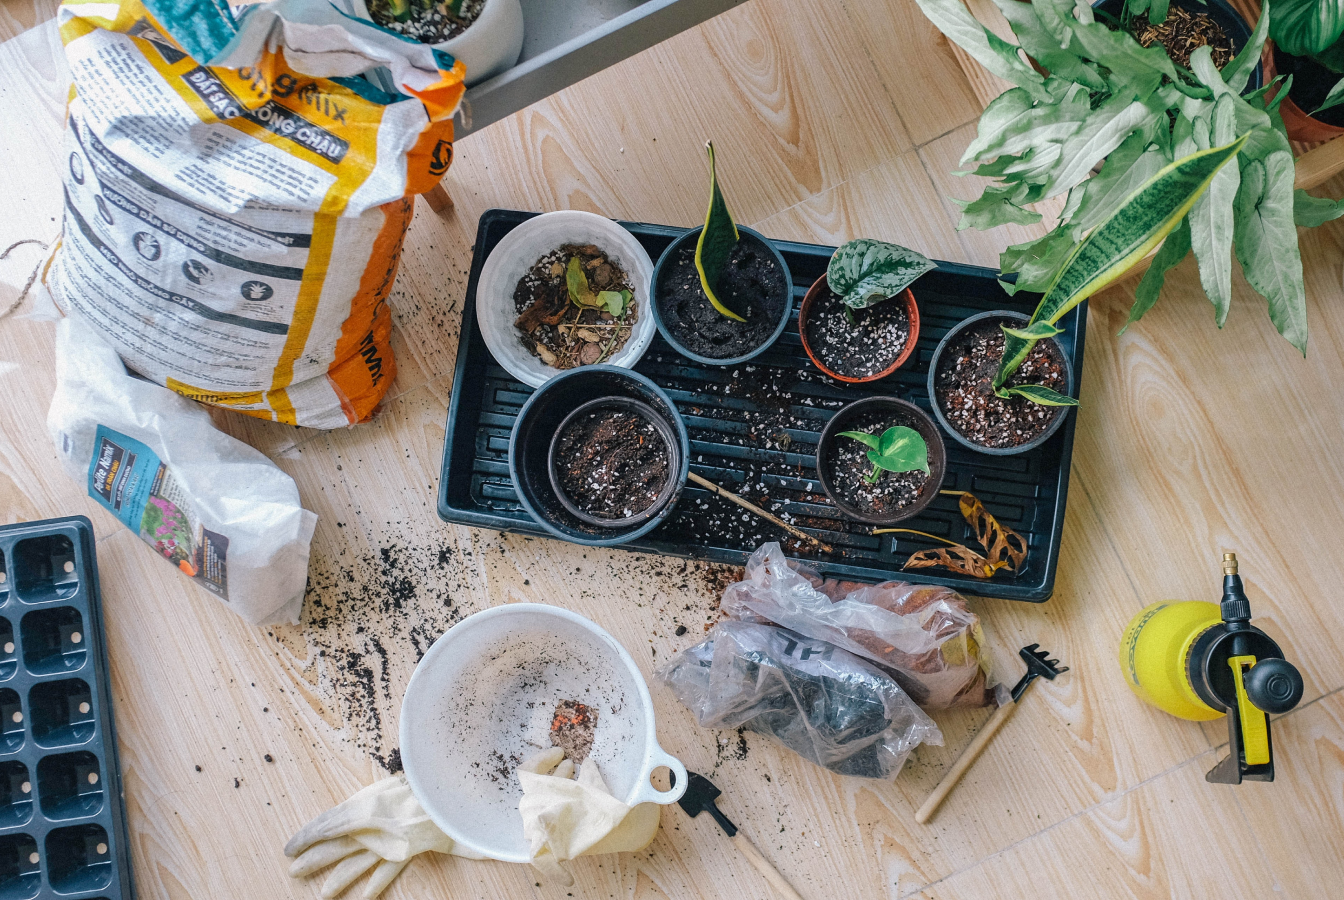 A kit to grow your own plants and herbs at home.